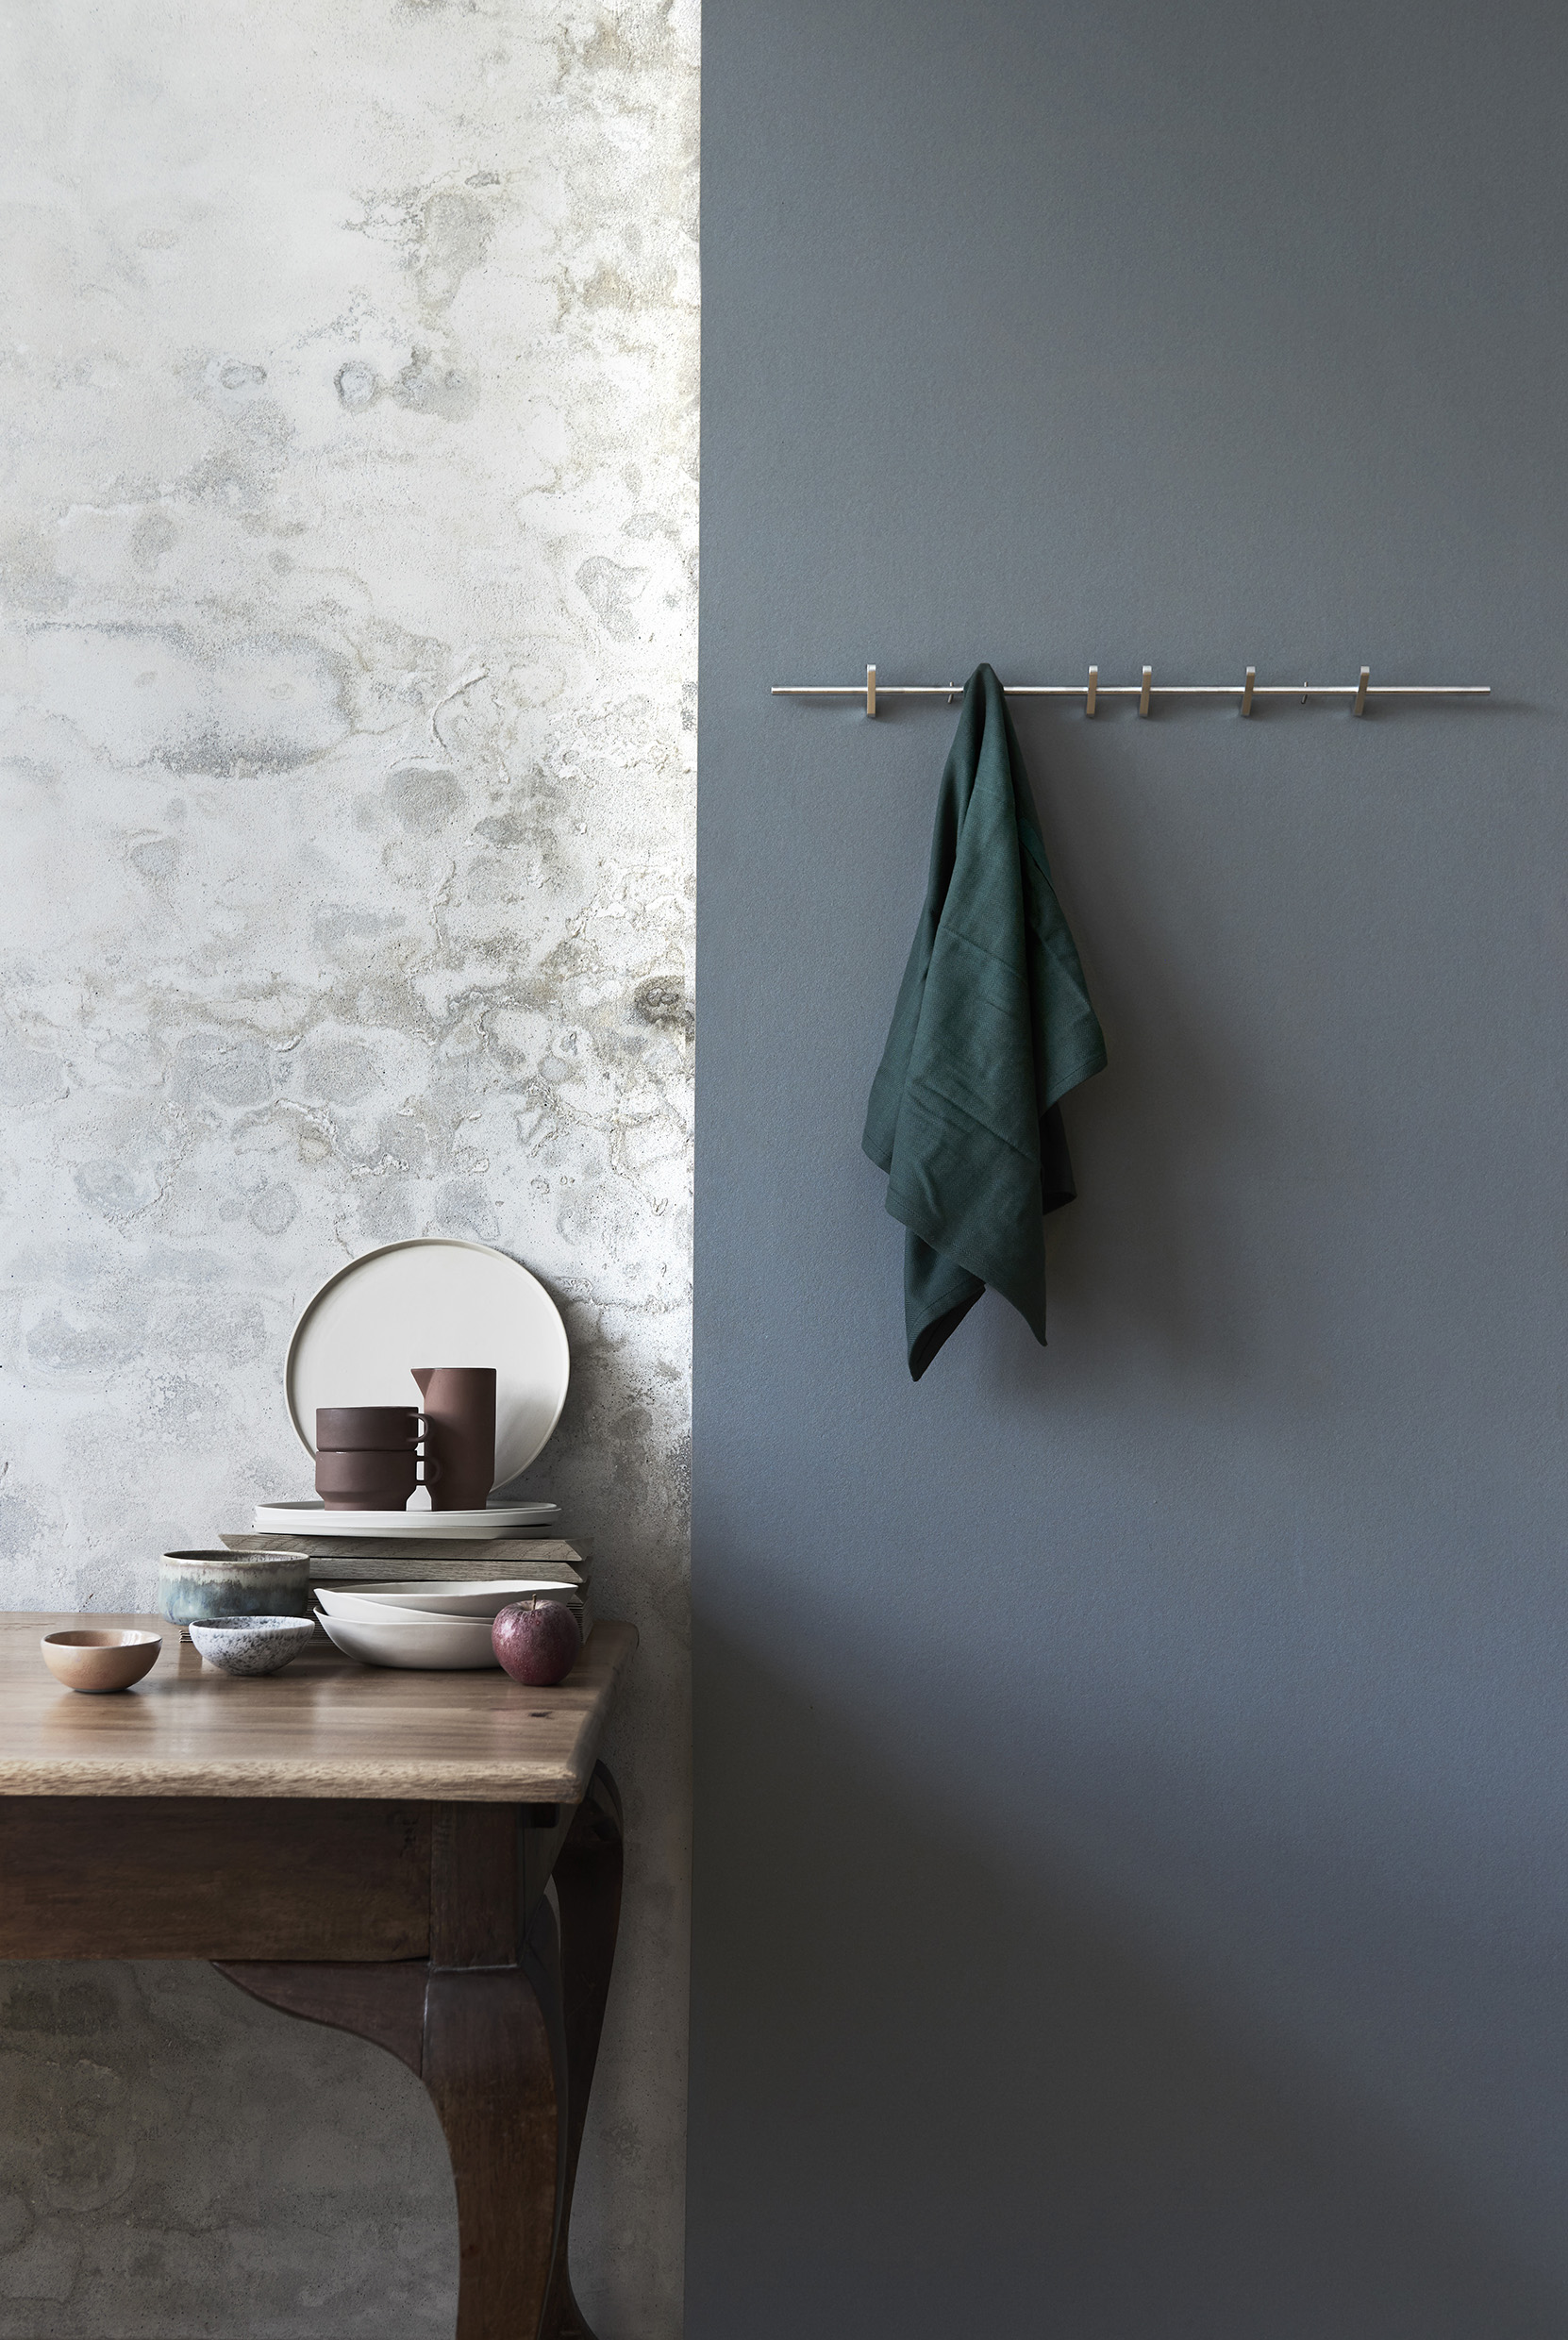 MOEBE_COAT-RACK_IC_Low-Res_4